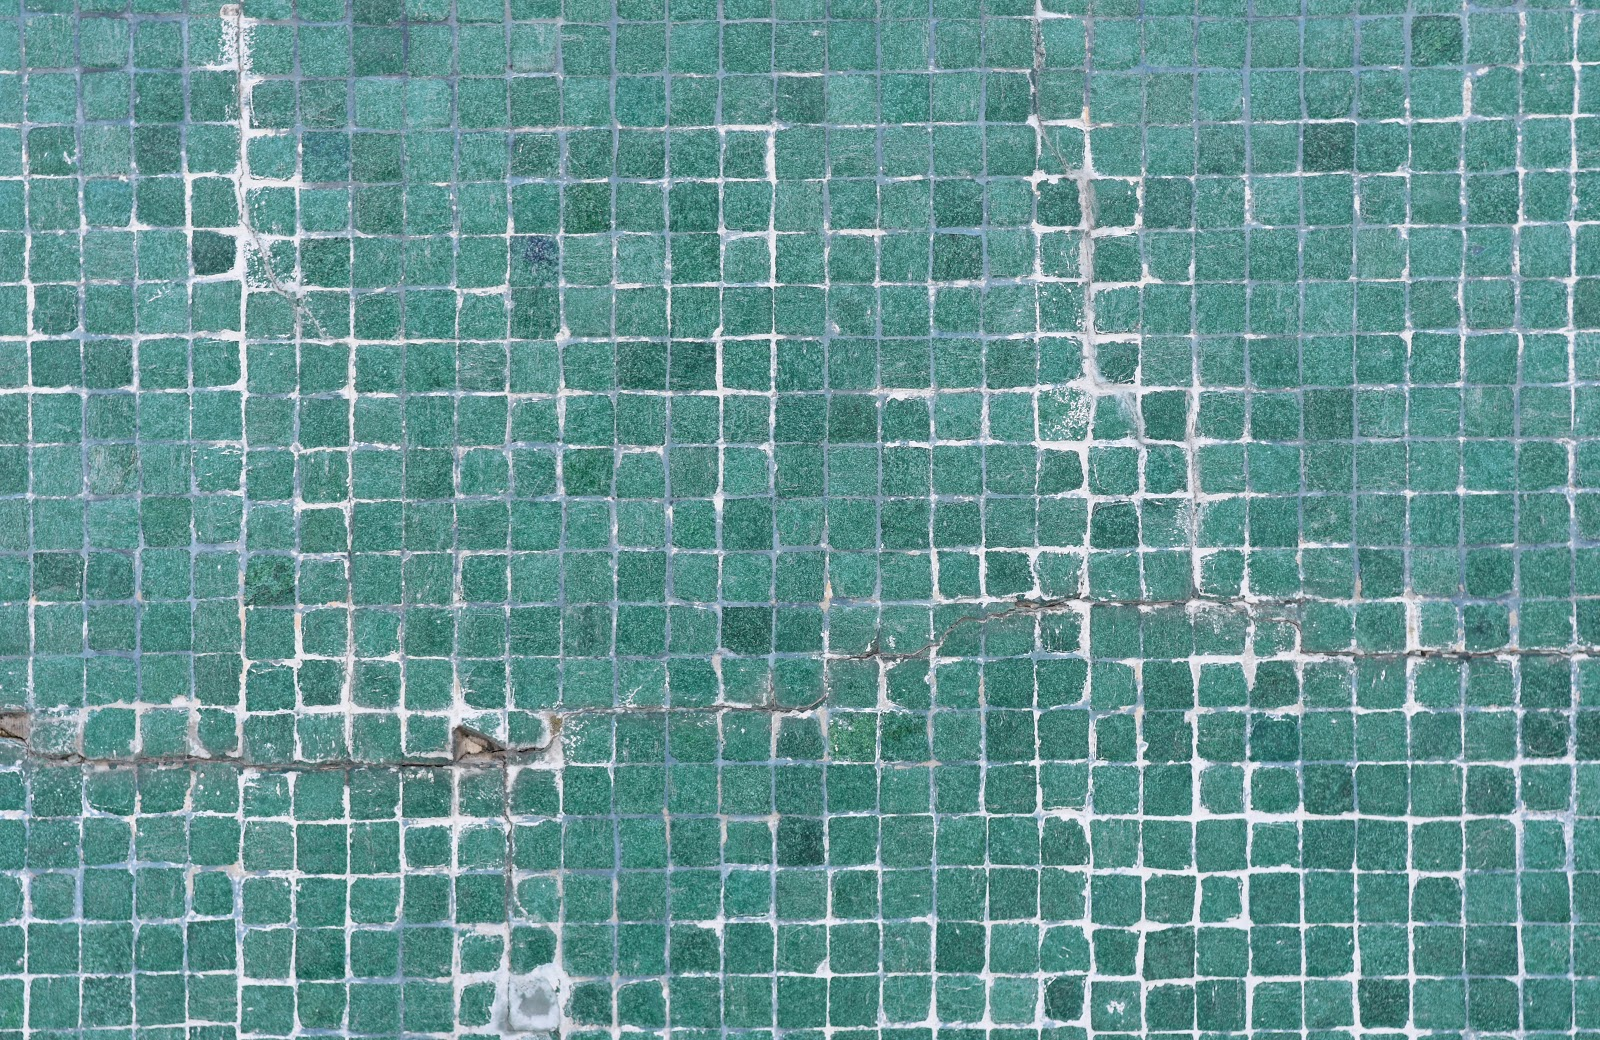 cracked tiles on a concrete swimming pool wall